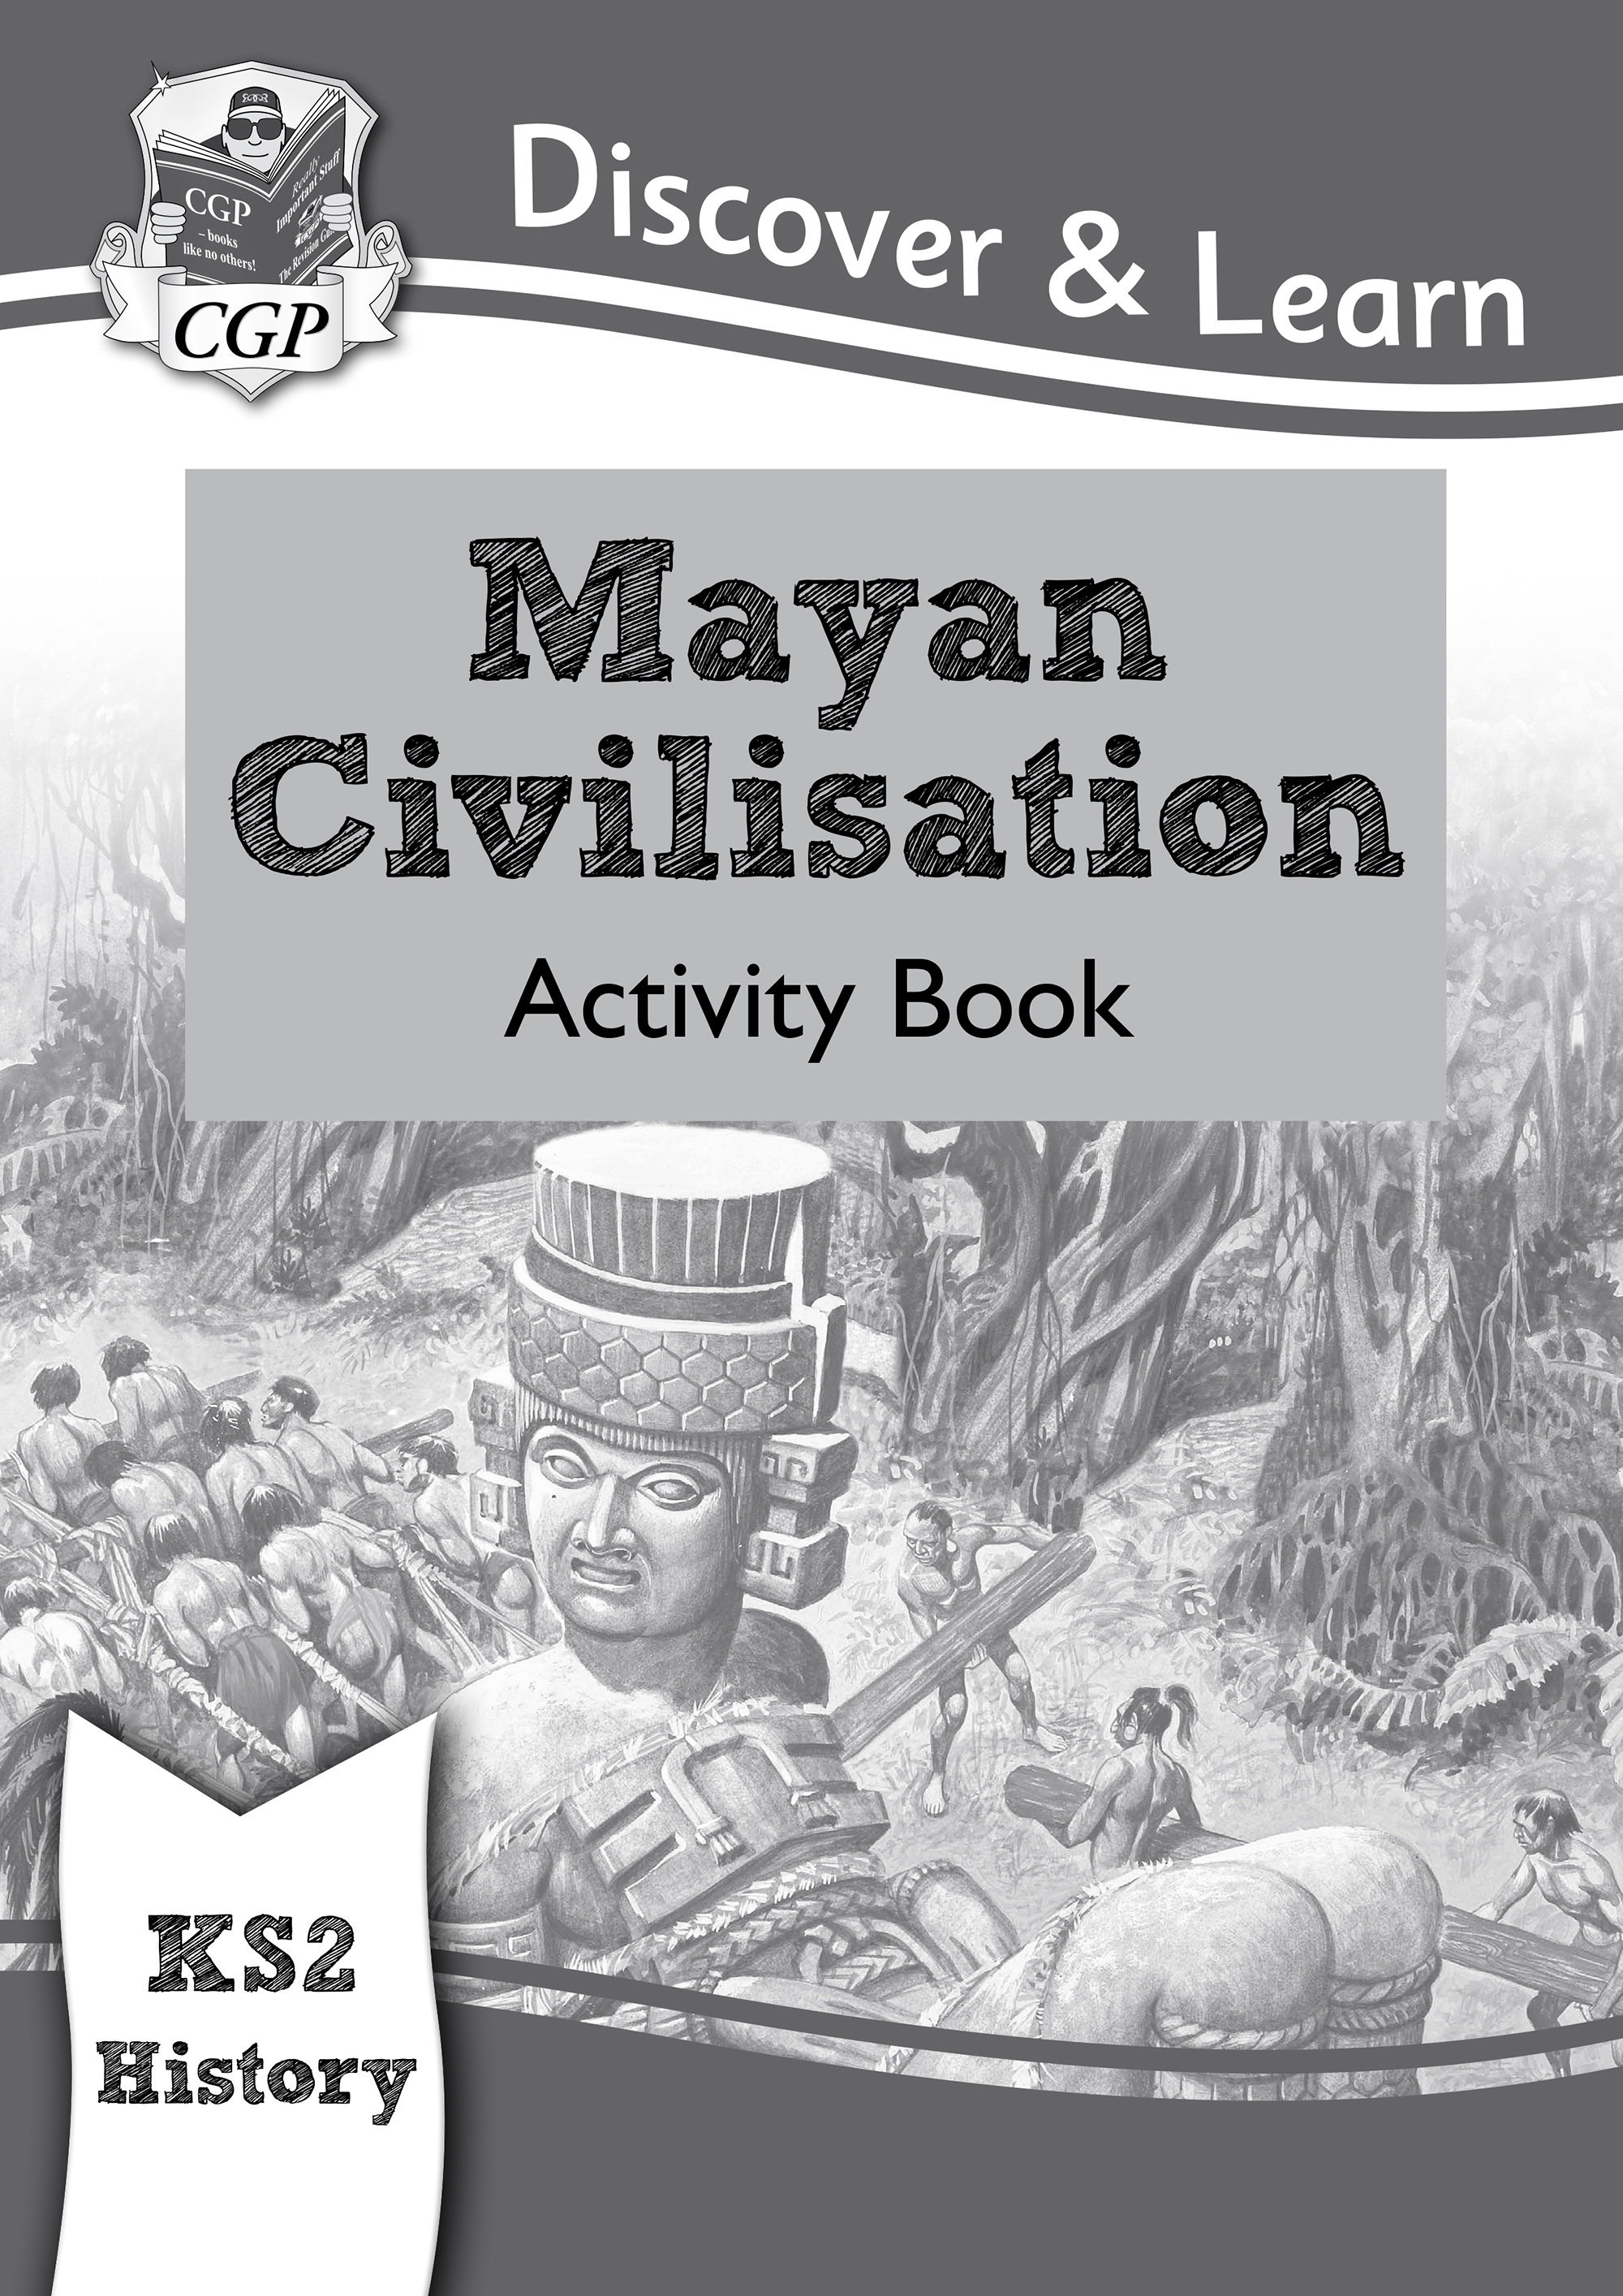 HMW21DK - KS2 Discover & Learn: History - Mayan Civilisation Activity Book